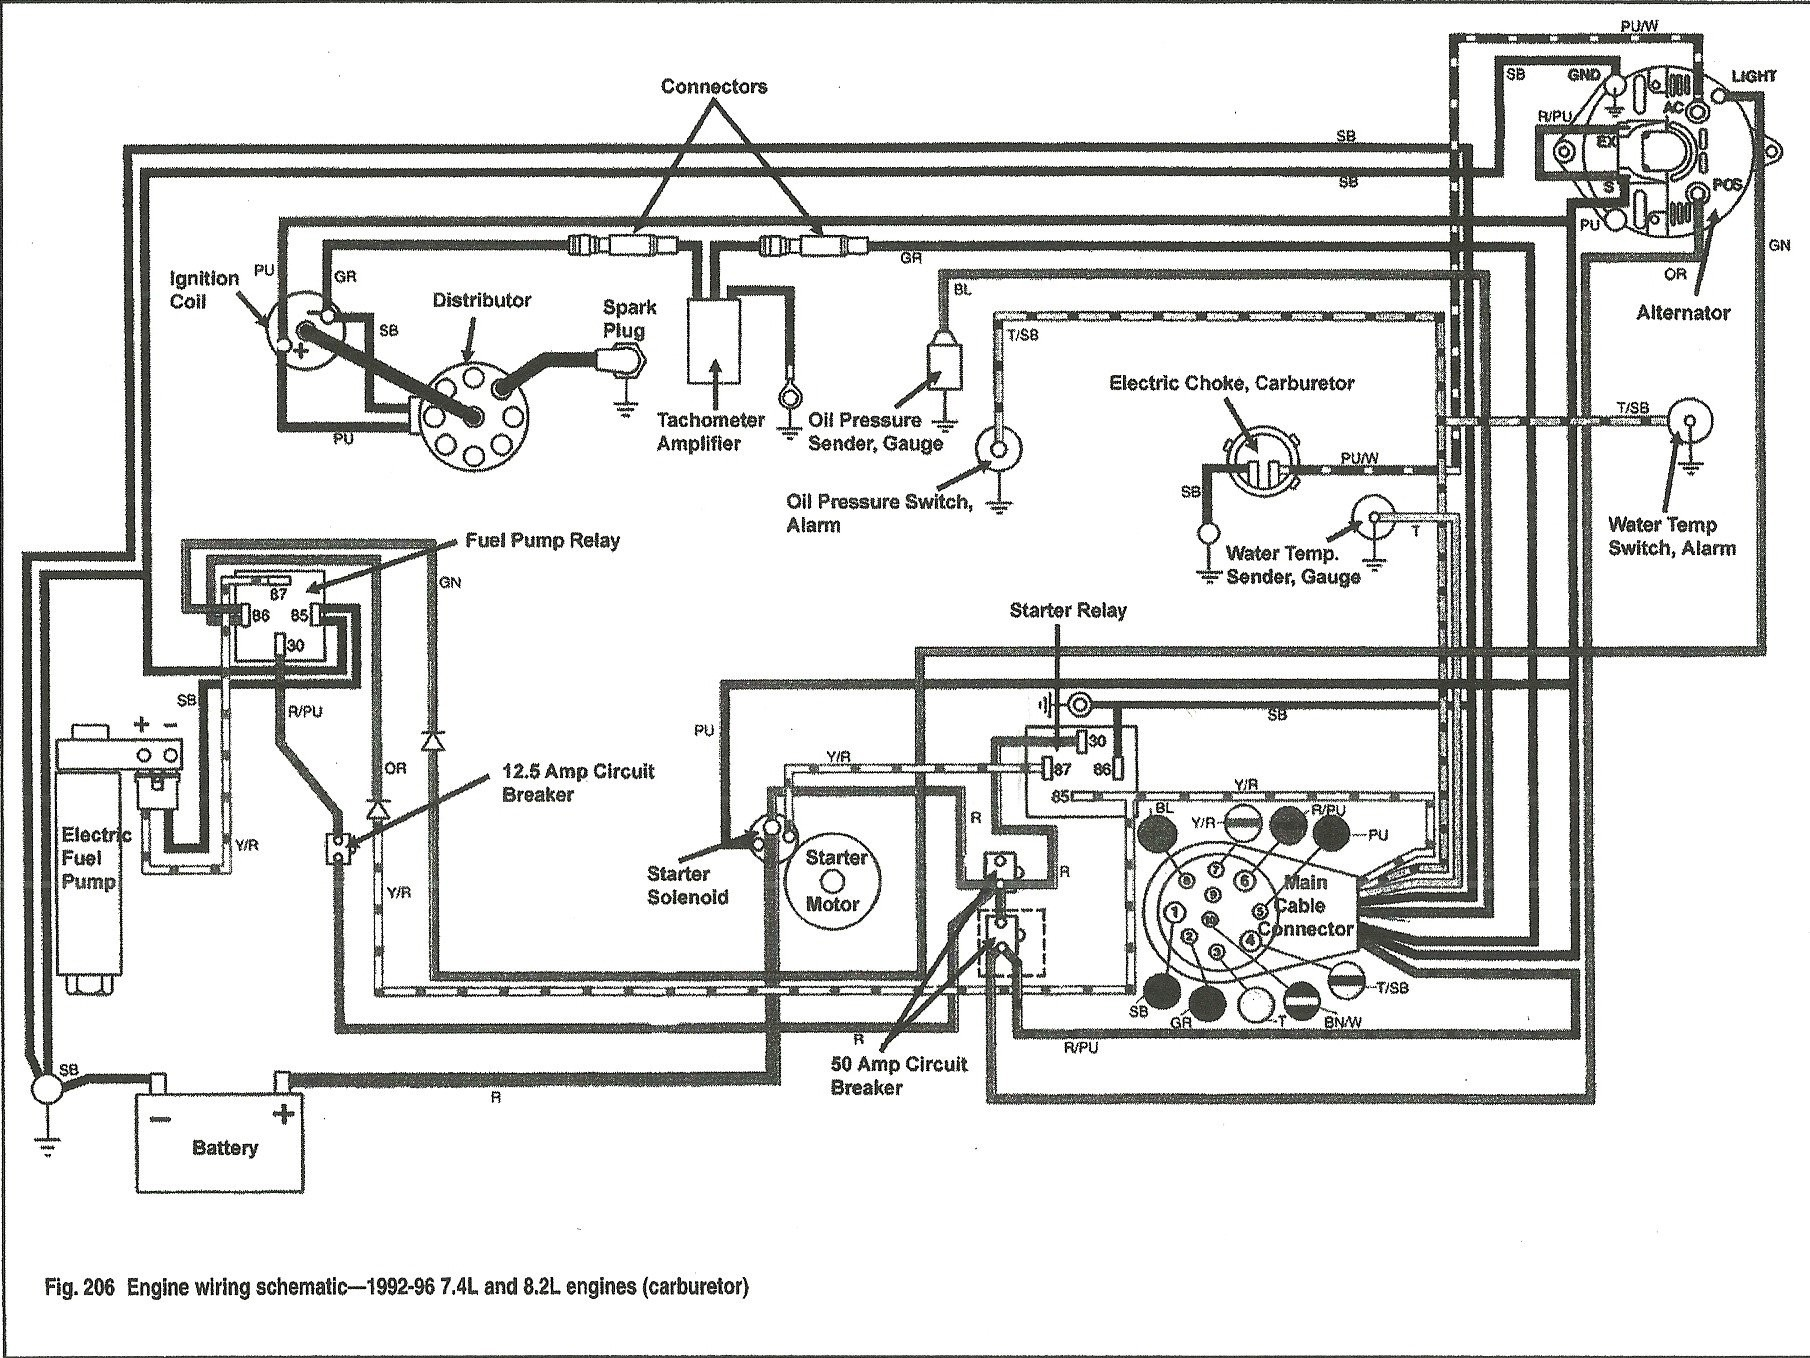 Volvo Penta 270 Trim Wiring Diagram Library 325ci Engine 4 3 A Lot Of Play In Steering Yoke My